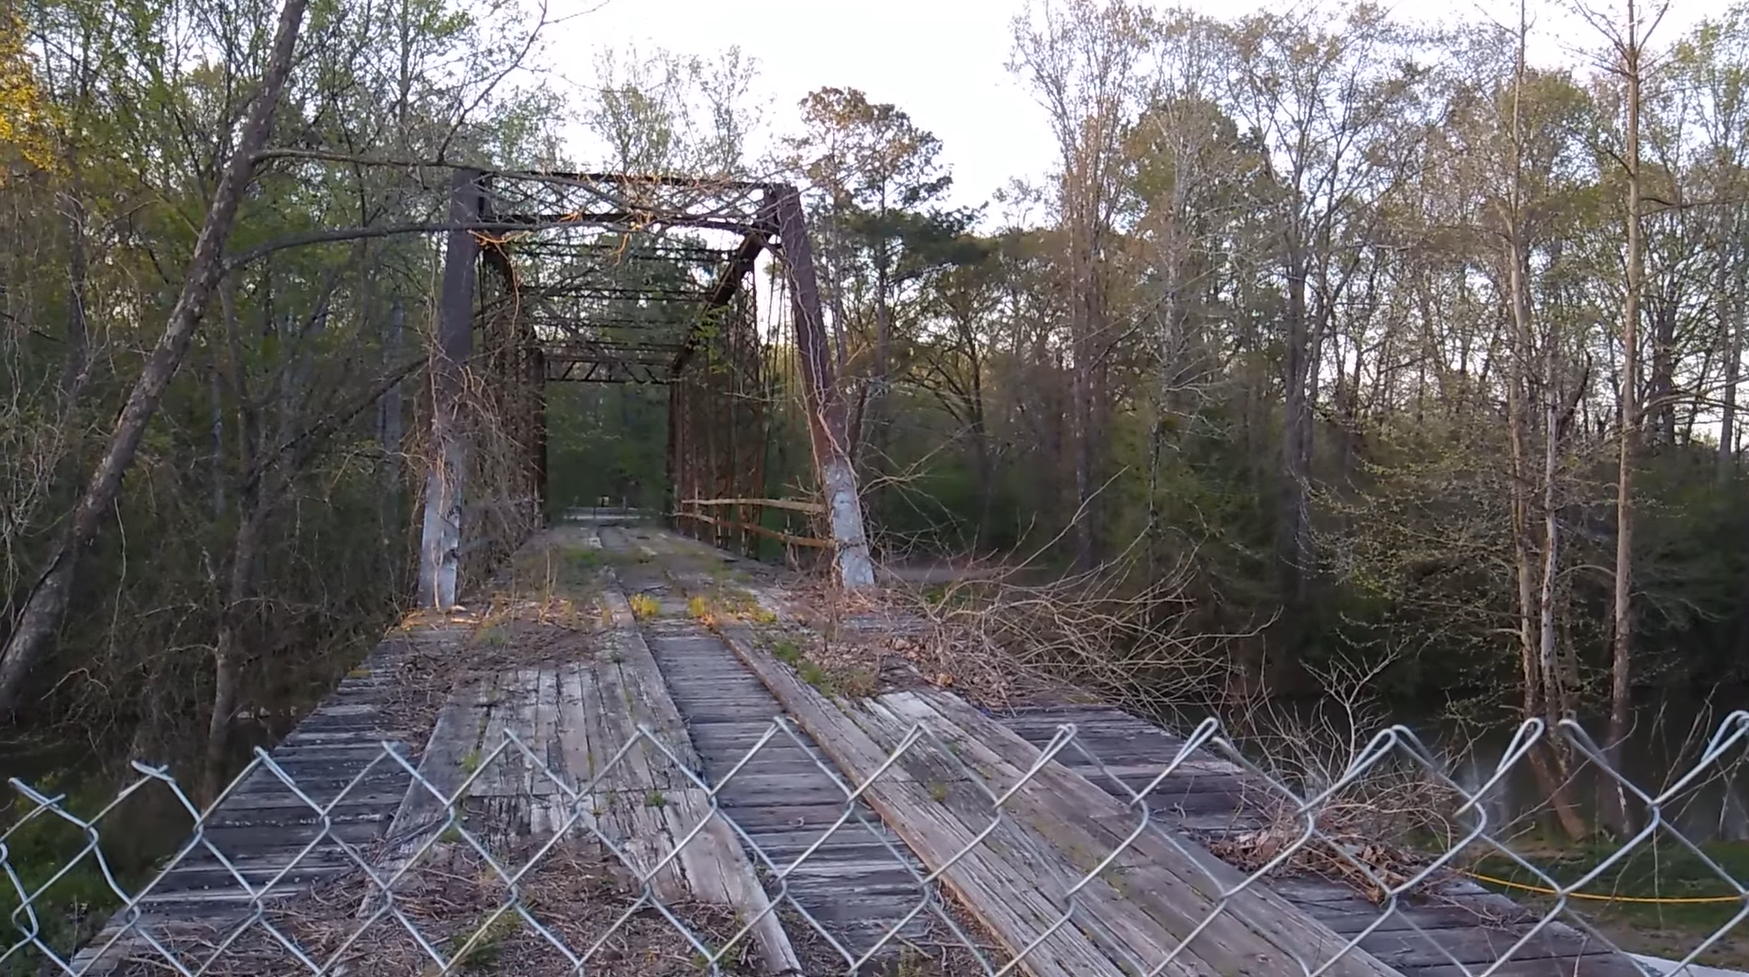 Haunted Road Png - Haunted Road Trip: The Horrors Of Hell's Gate Bridge, Oxford, Alabama